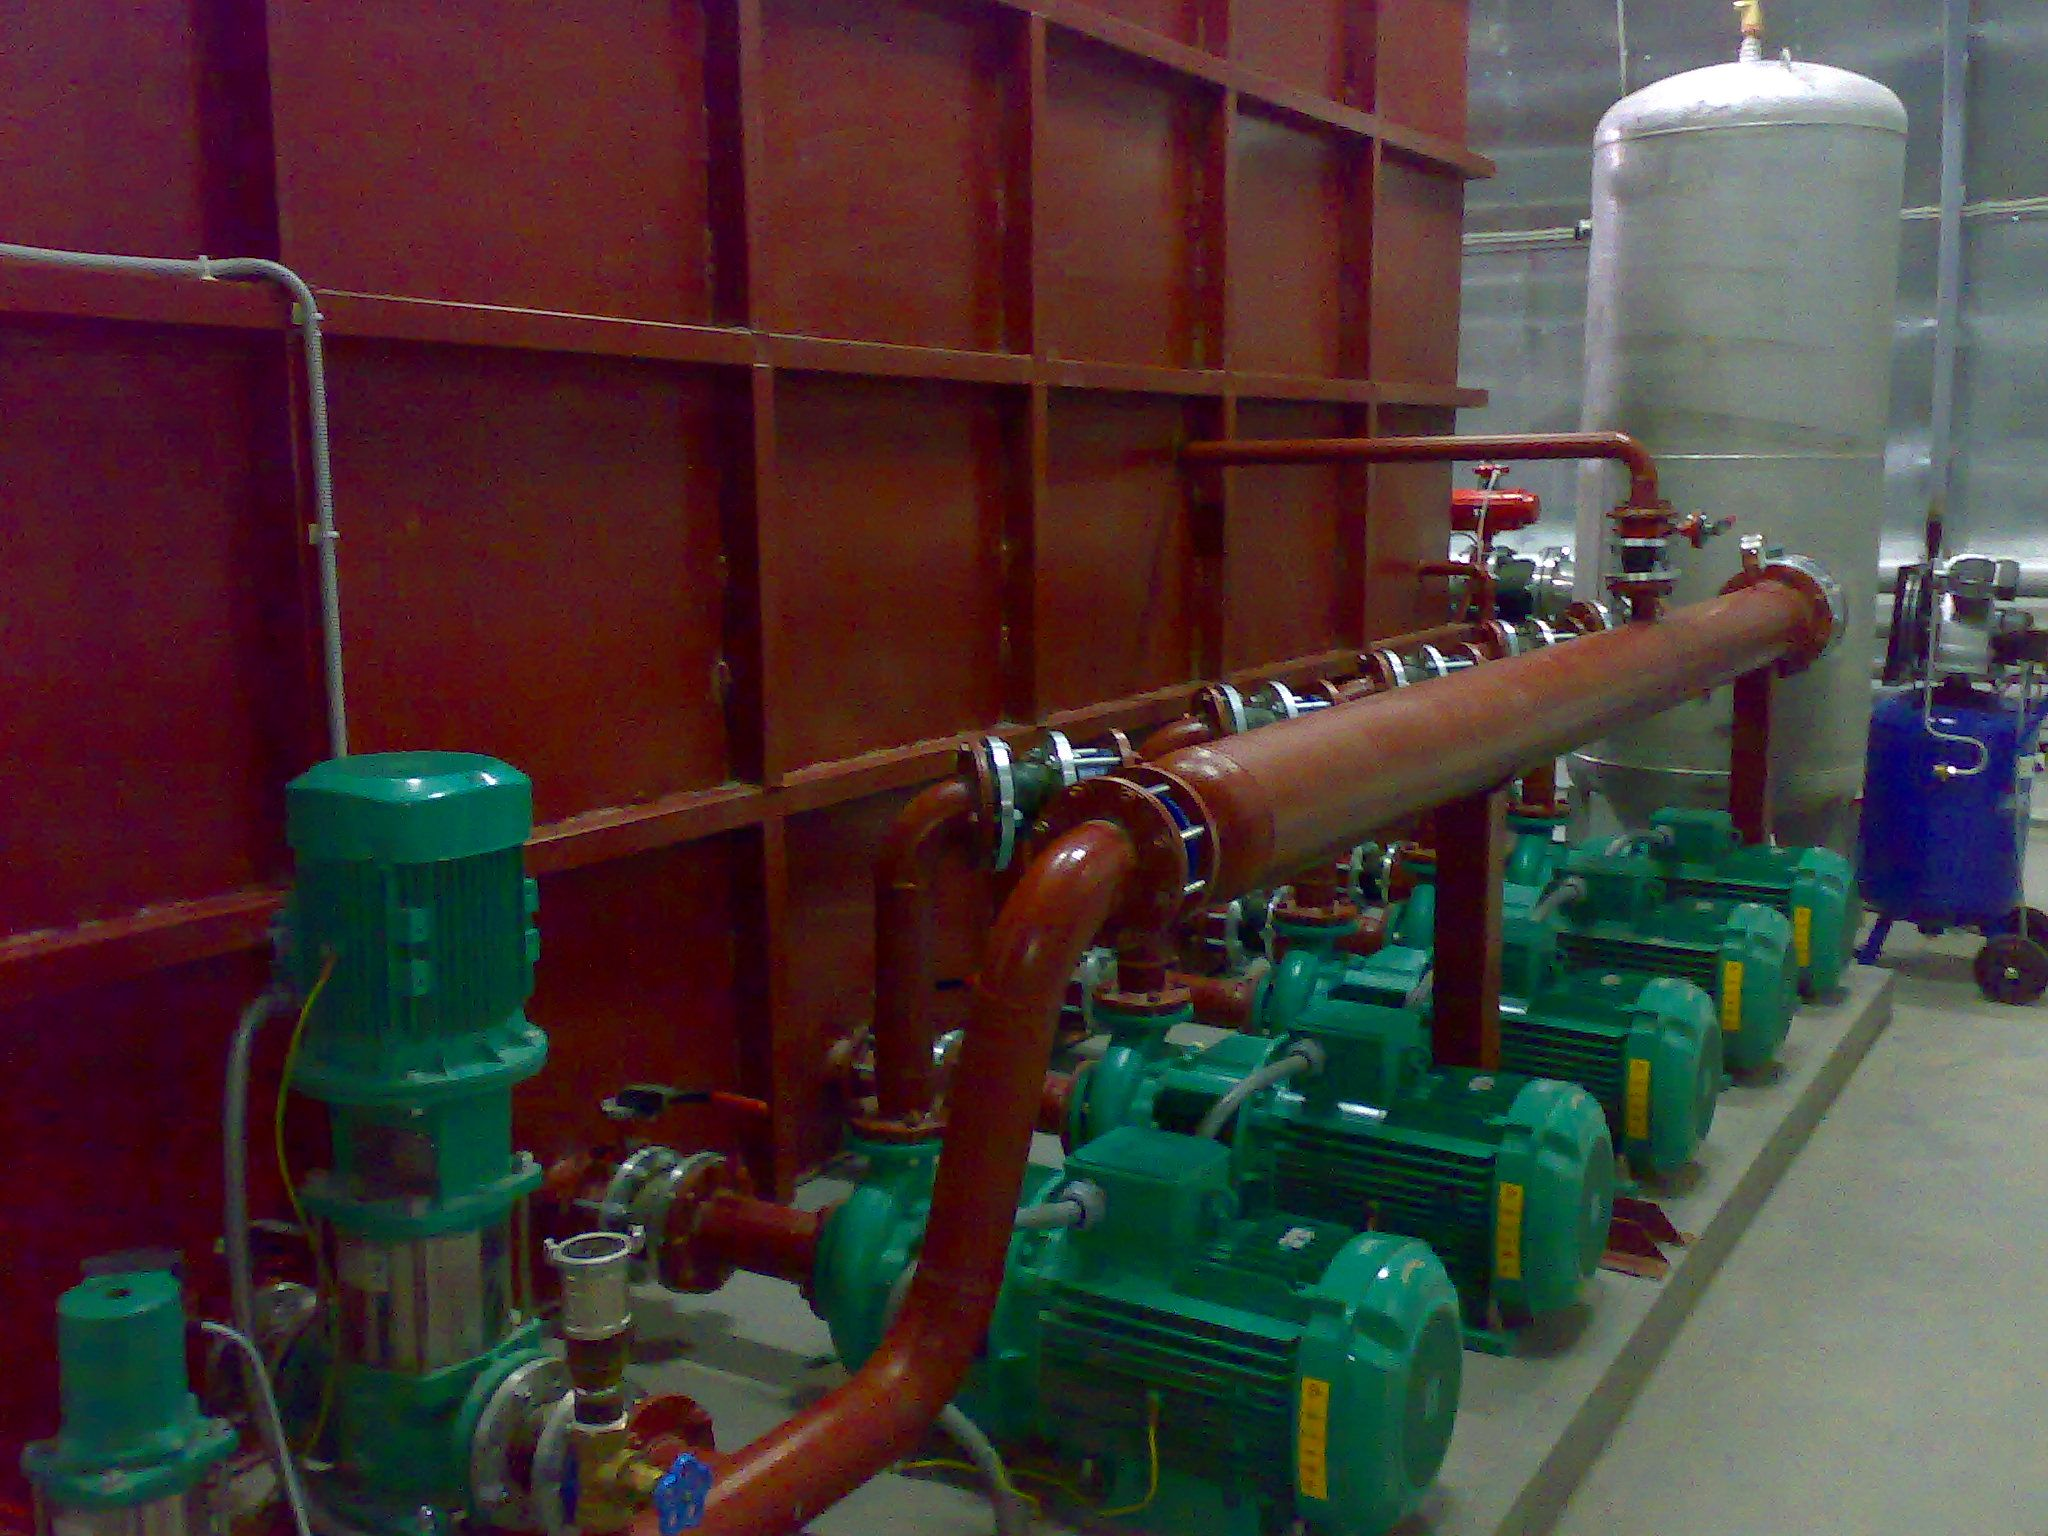 Flow measurement, flow measuring, flow metering, calibration test stand, volumetric flowmeter, mass flowmeter, Promass X, Micro Motion CMFHC, Trio-Mass, Optimass 2000, Rotamass, reference meter, thermal mass, multiphase, coriolis, mass electromagnetic variable area ultrasonic vortex flowmeter, verification calibration test testing flowmeter, flowmeter calibration standards, weighing method, measurement liquid flow, liquid flow measurement, meter calibration, Komissarov Ltd, Metrology Systems Engineering Company, 流量測量,流量計校驗,校驗流量計,測試流量計,質量流量,體積流量,流量测量,流量计校验,校验流量计,测试流量计,流量测量,质量流量,体積流量, 流量計標定,  手段流量计的校准,  设备流量计标定, 流量計のキャリブレーション,  IS0 4185, OIML R105, OIML R49, Flow Meter Calibration Test Bench, 流量表检定试验台